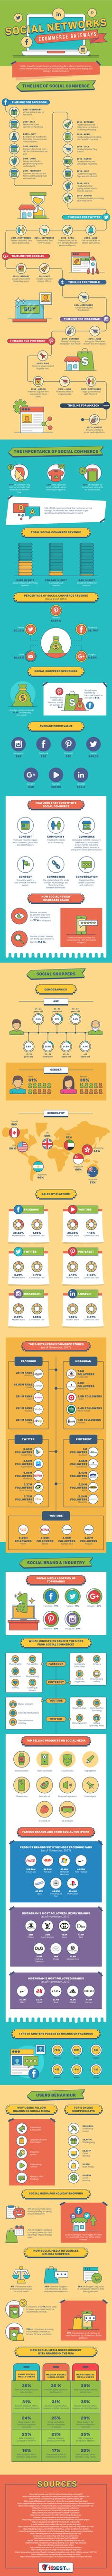 Social Networks and eCommerce [Infographic] | Social Media Today